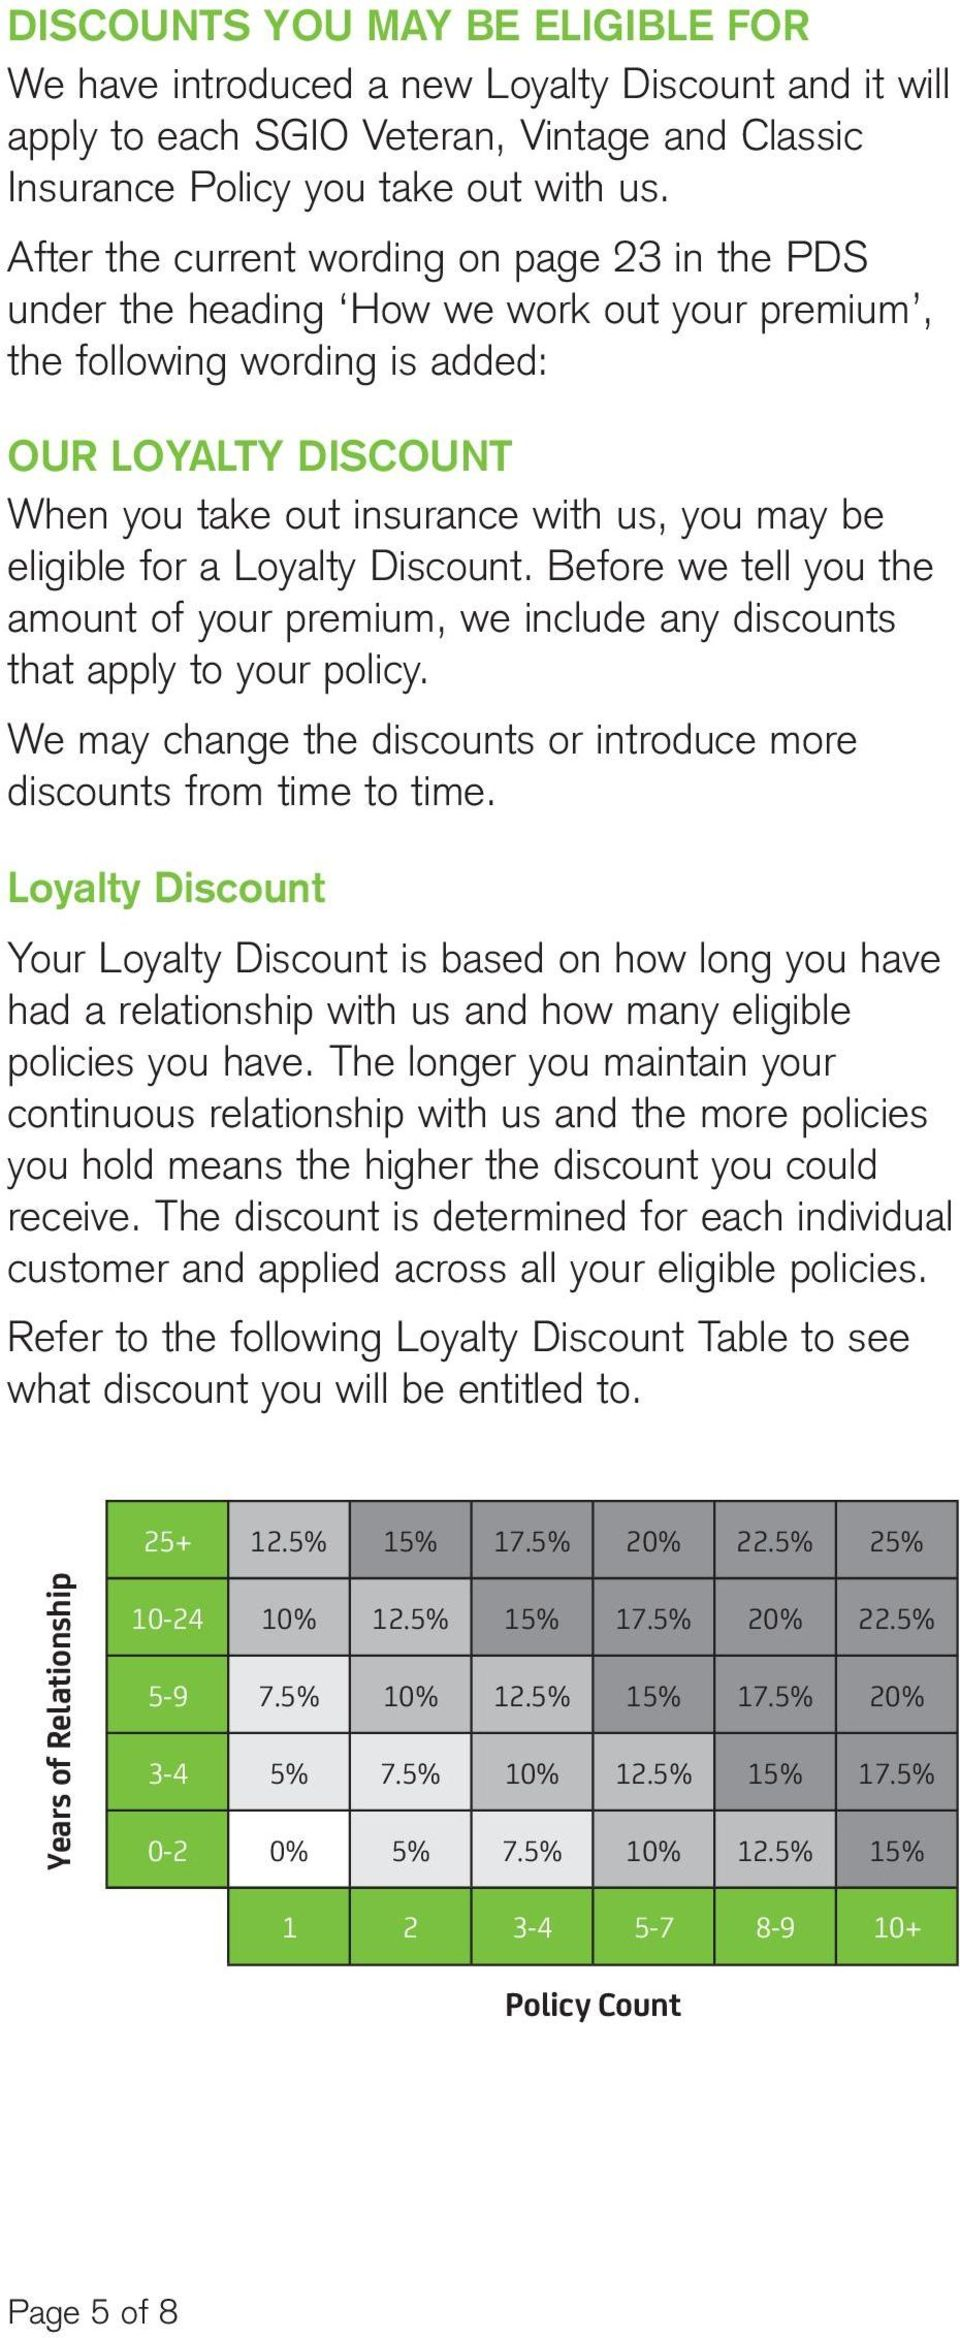 eligible for a Loyalty Discount. Before we tell you the amount of your premium, we include any discounts that apply to your policy.